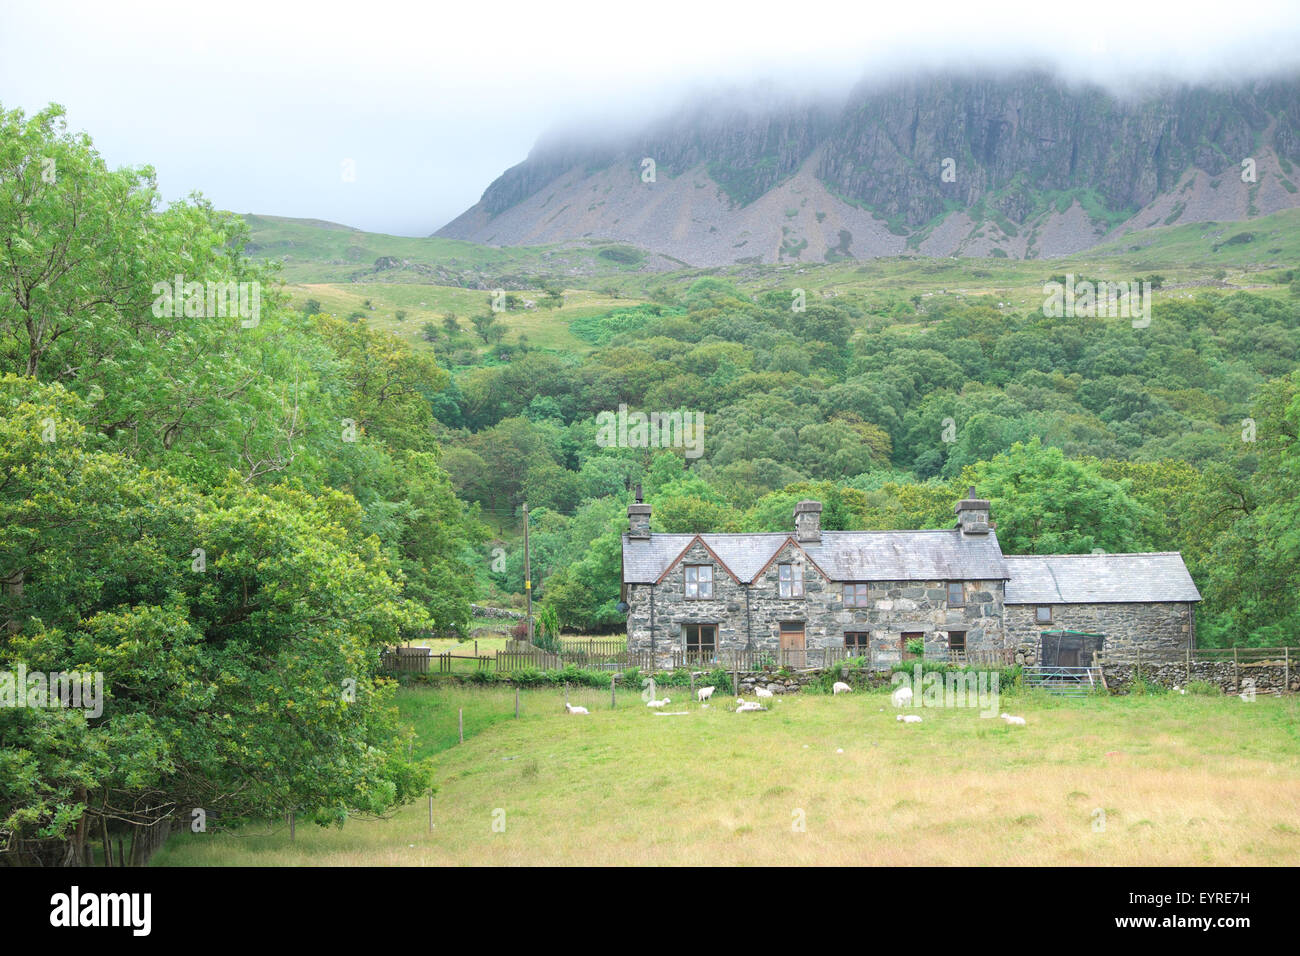 Ty-Nant farm, Cadair Idris, Gwynedd, Wales the farmhouse lies at the start of the Pony Path track at foot of Cader - Stock Image